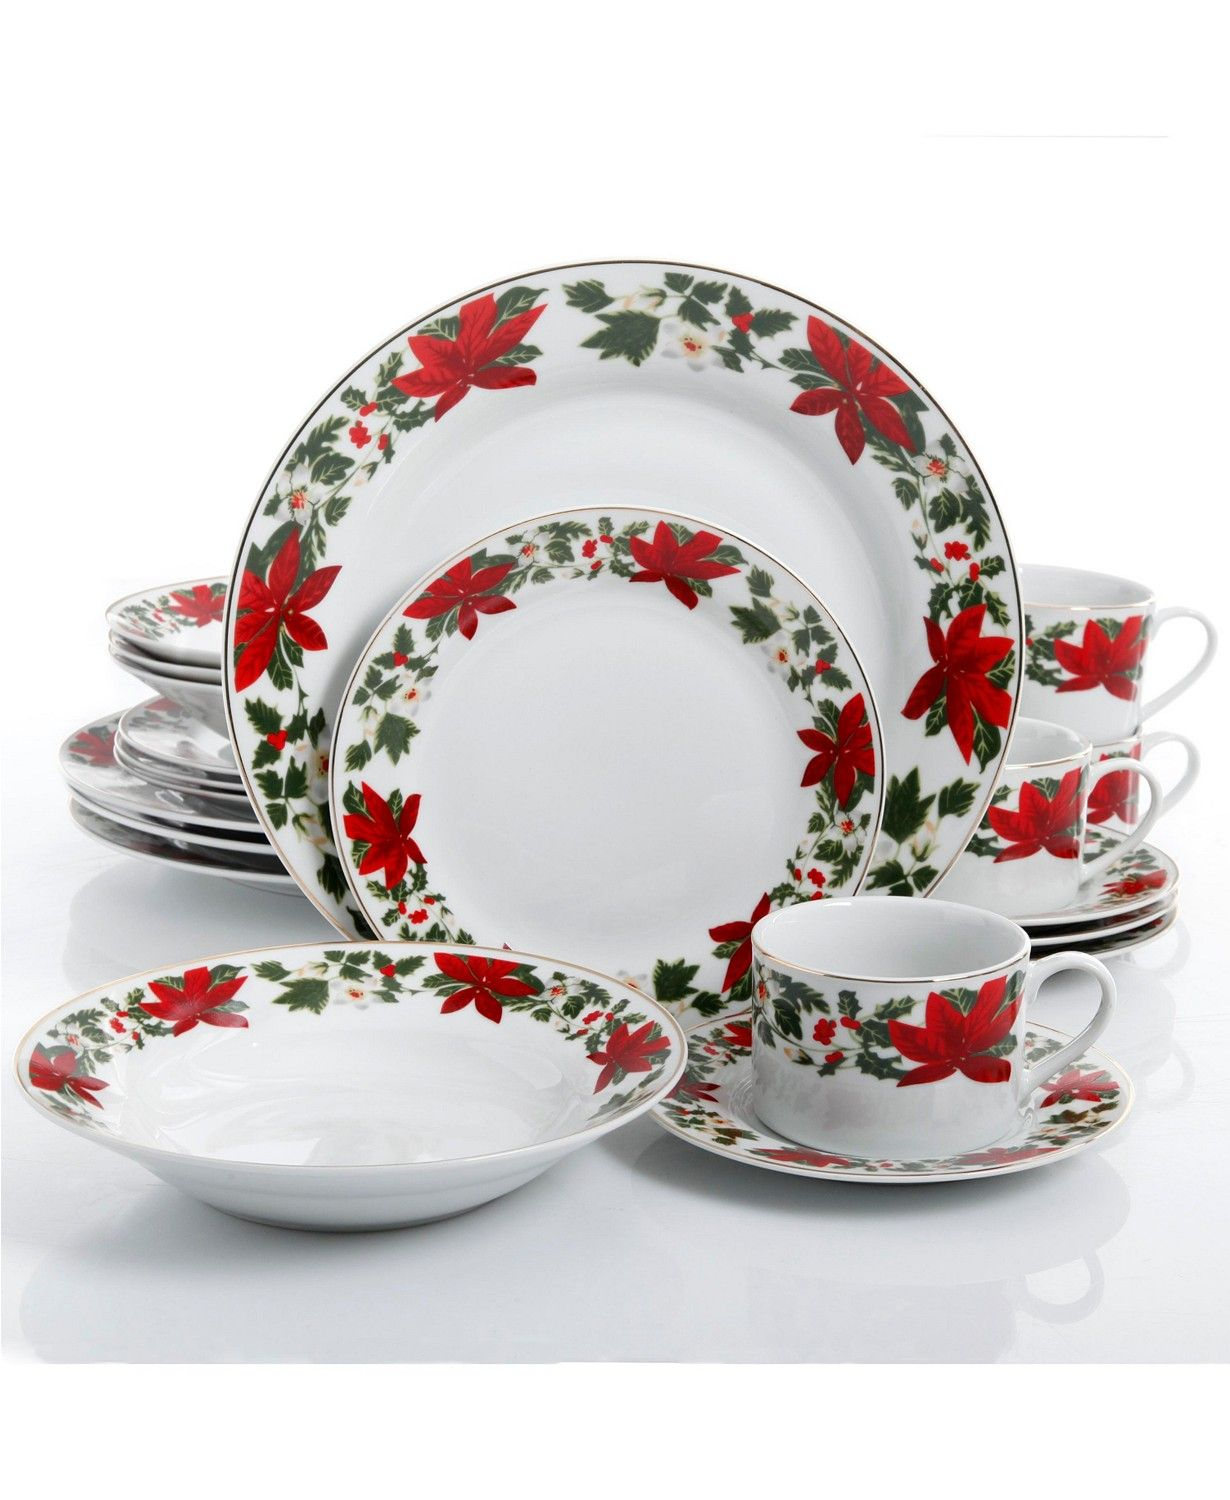 Christmas China Patterns You Ll Love For Your Southern Home Holiday Dinnerware Christmas Dinnerware Christmas Dinnerware Sets